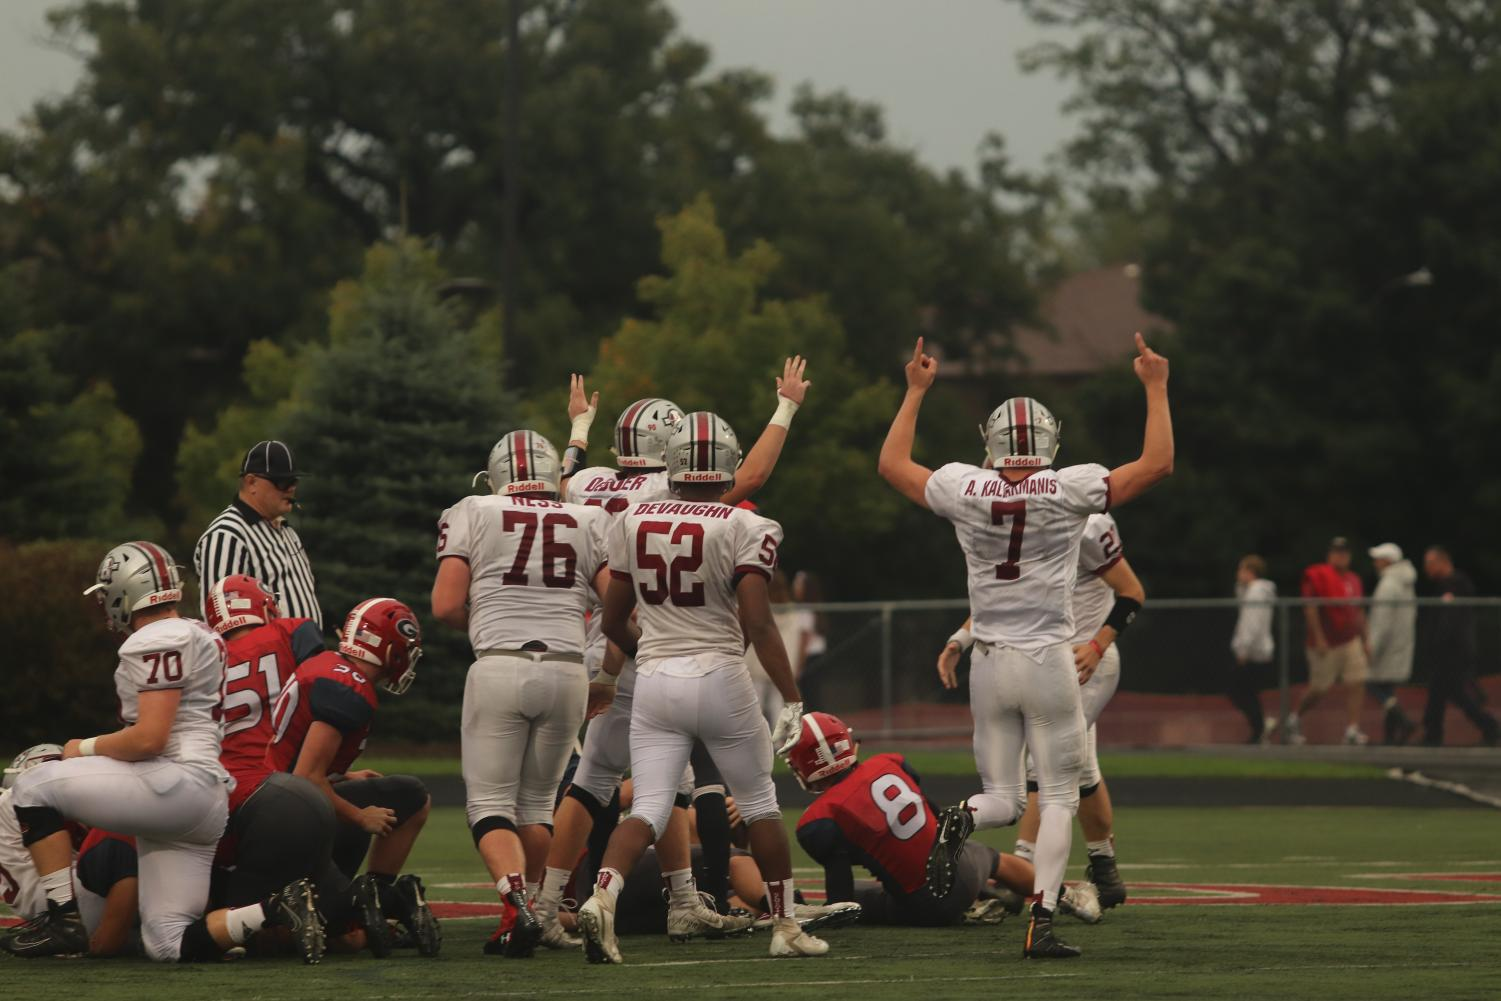 The Sequoits got excited when their first touchdown of the game was scored.